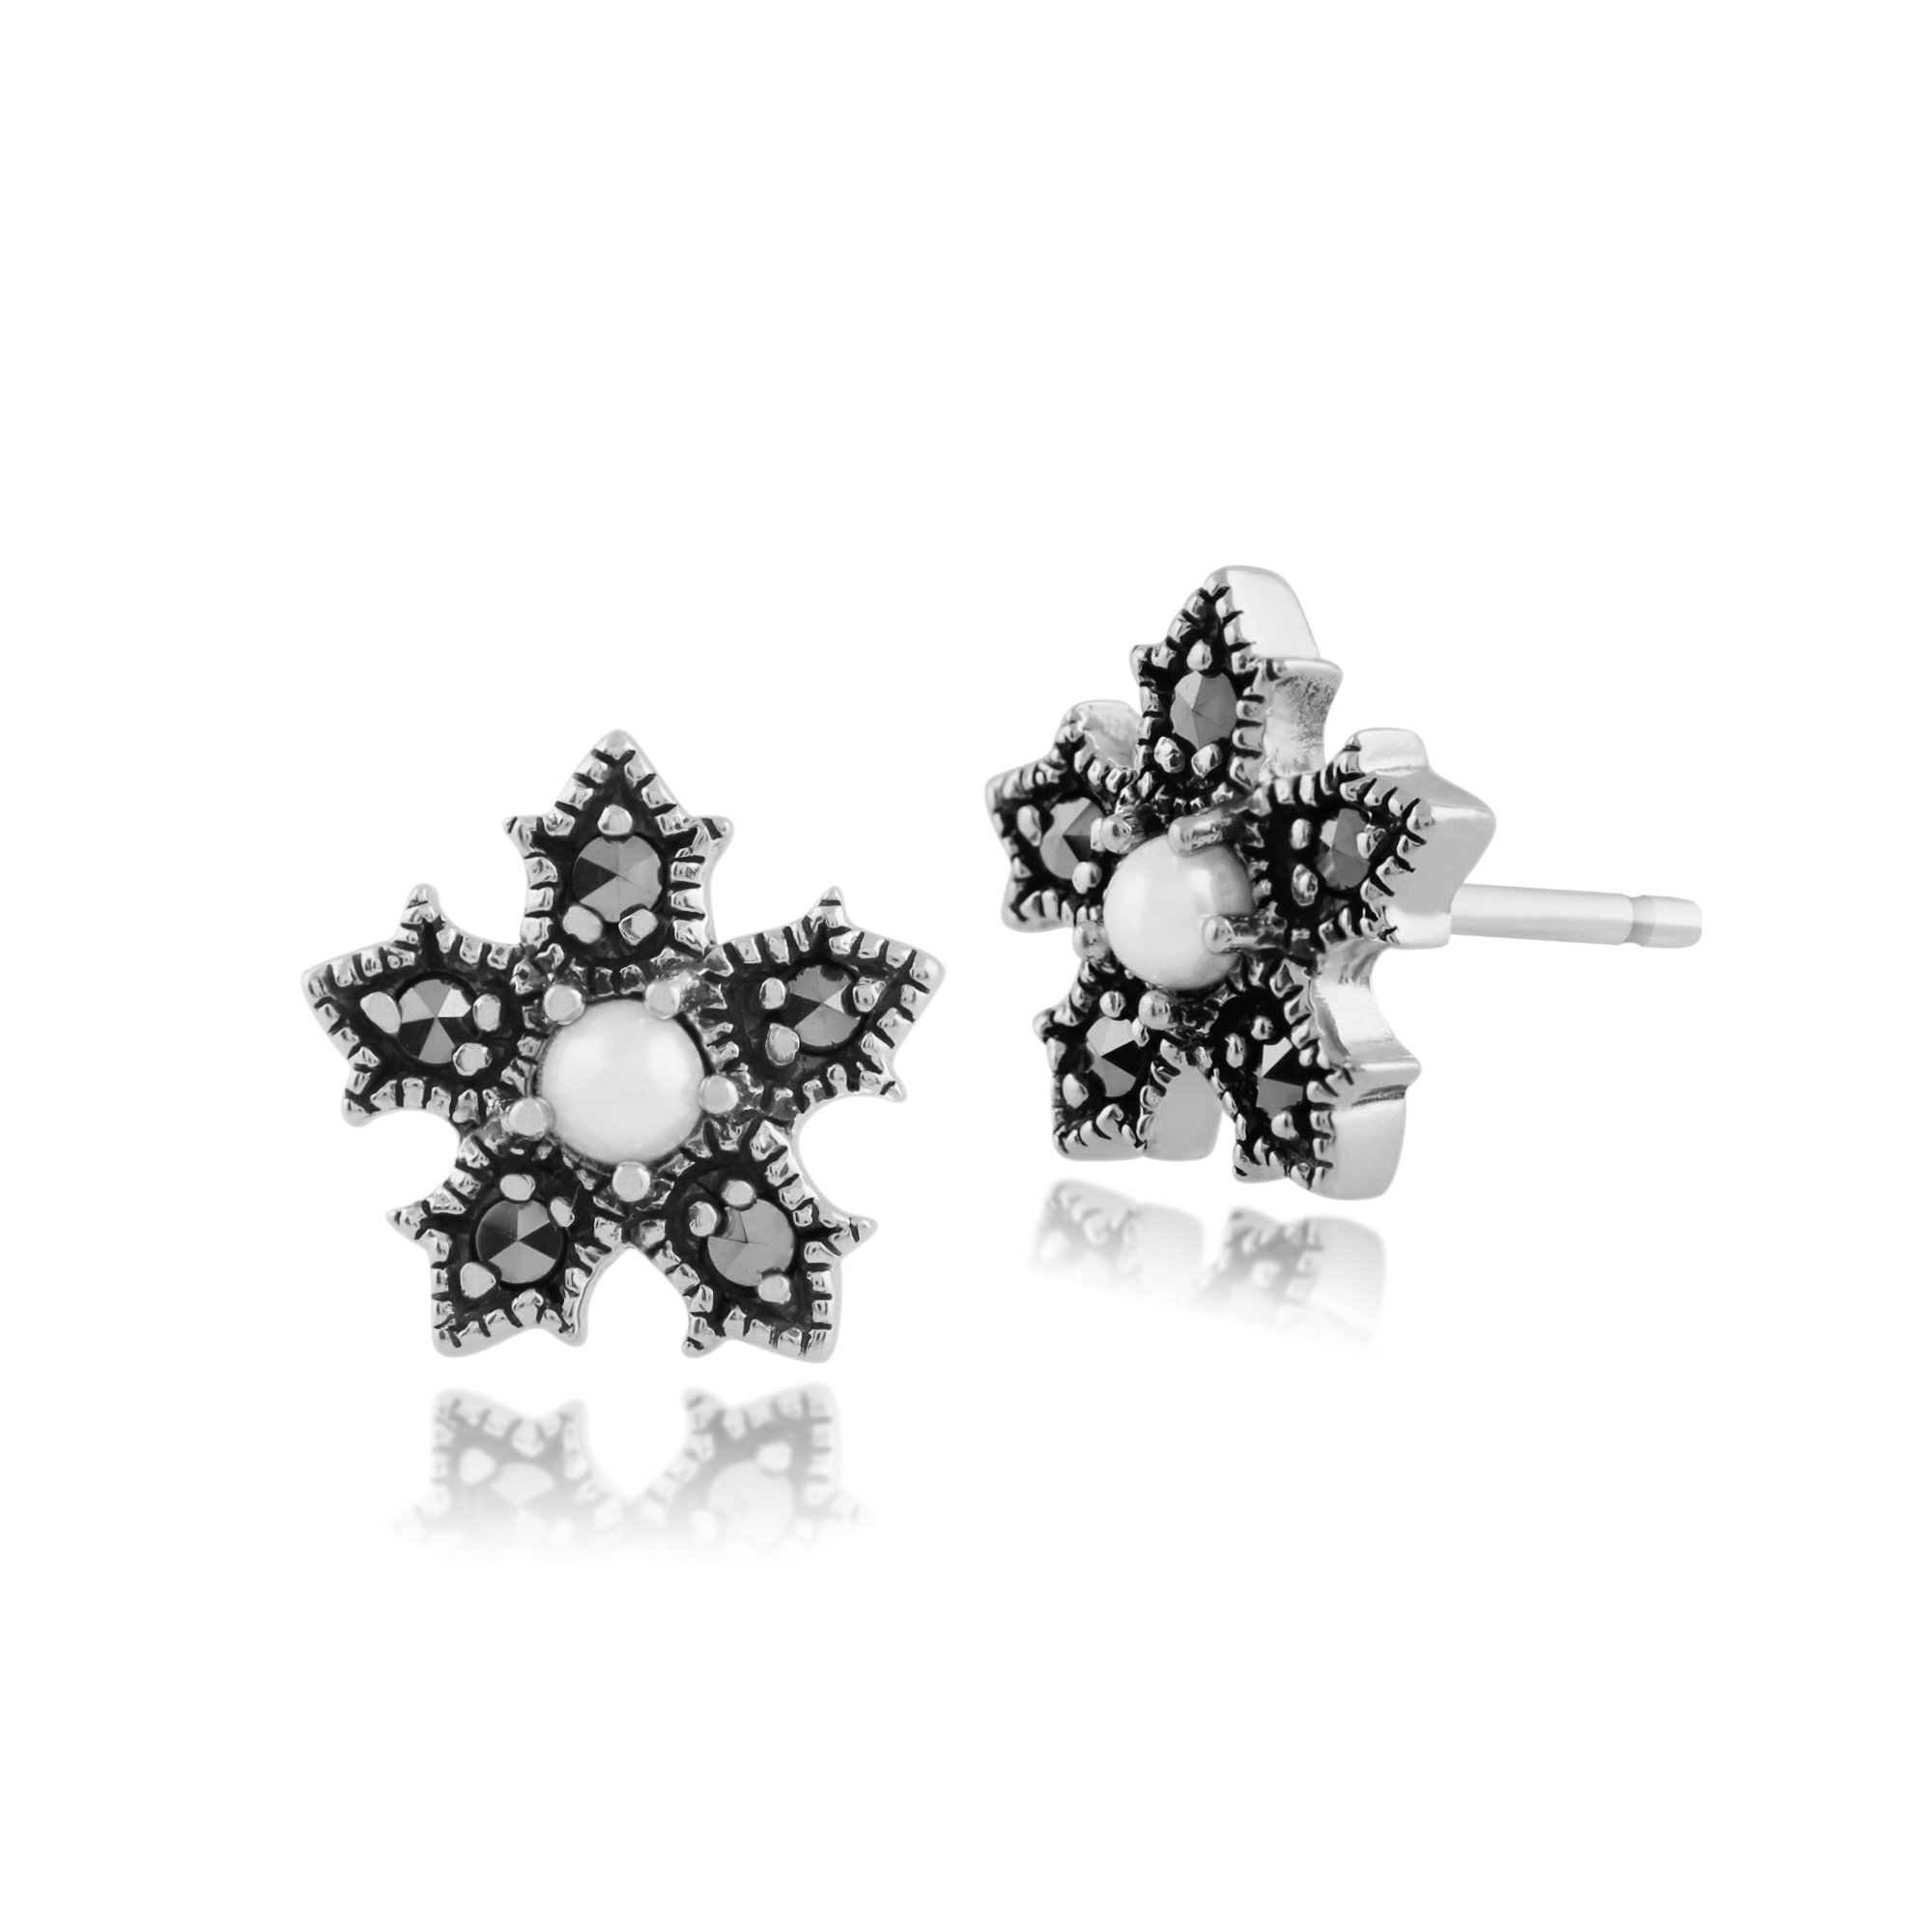 Gemondo 925 Sterling Silver 0.24ct Pearl & Marcasite Floral Stud Earrings